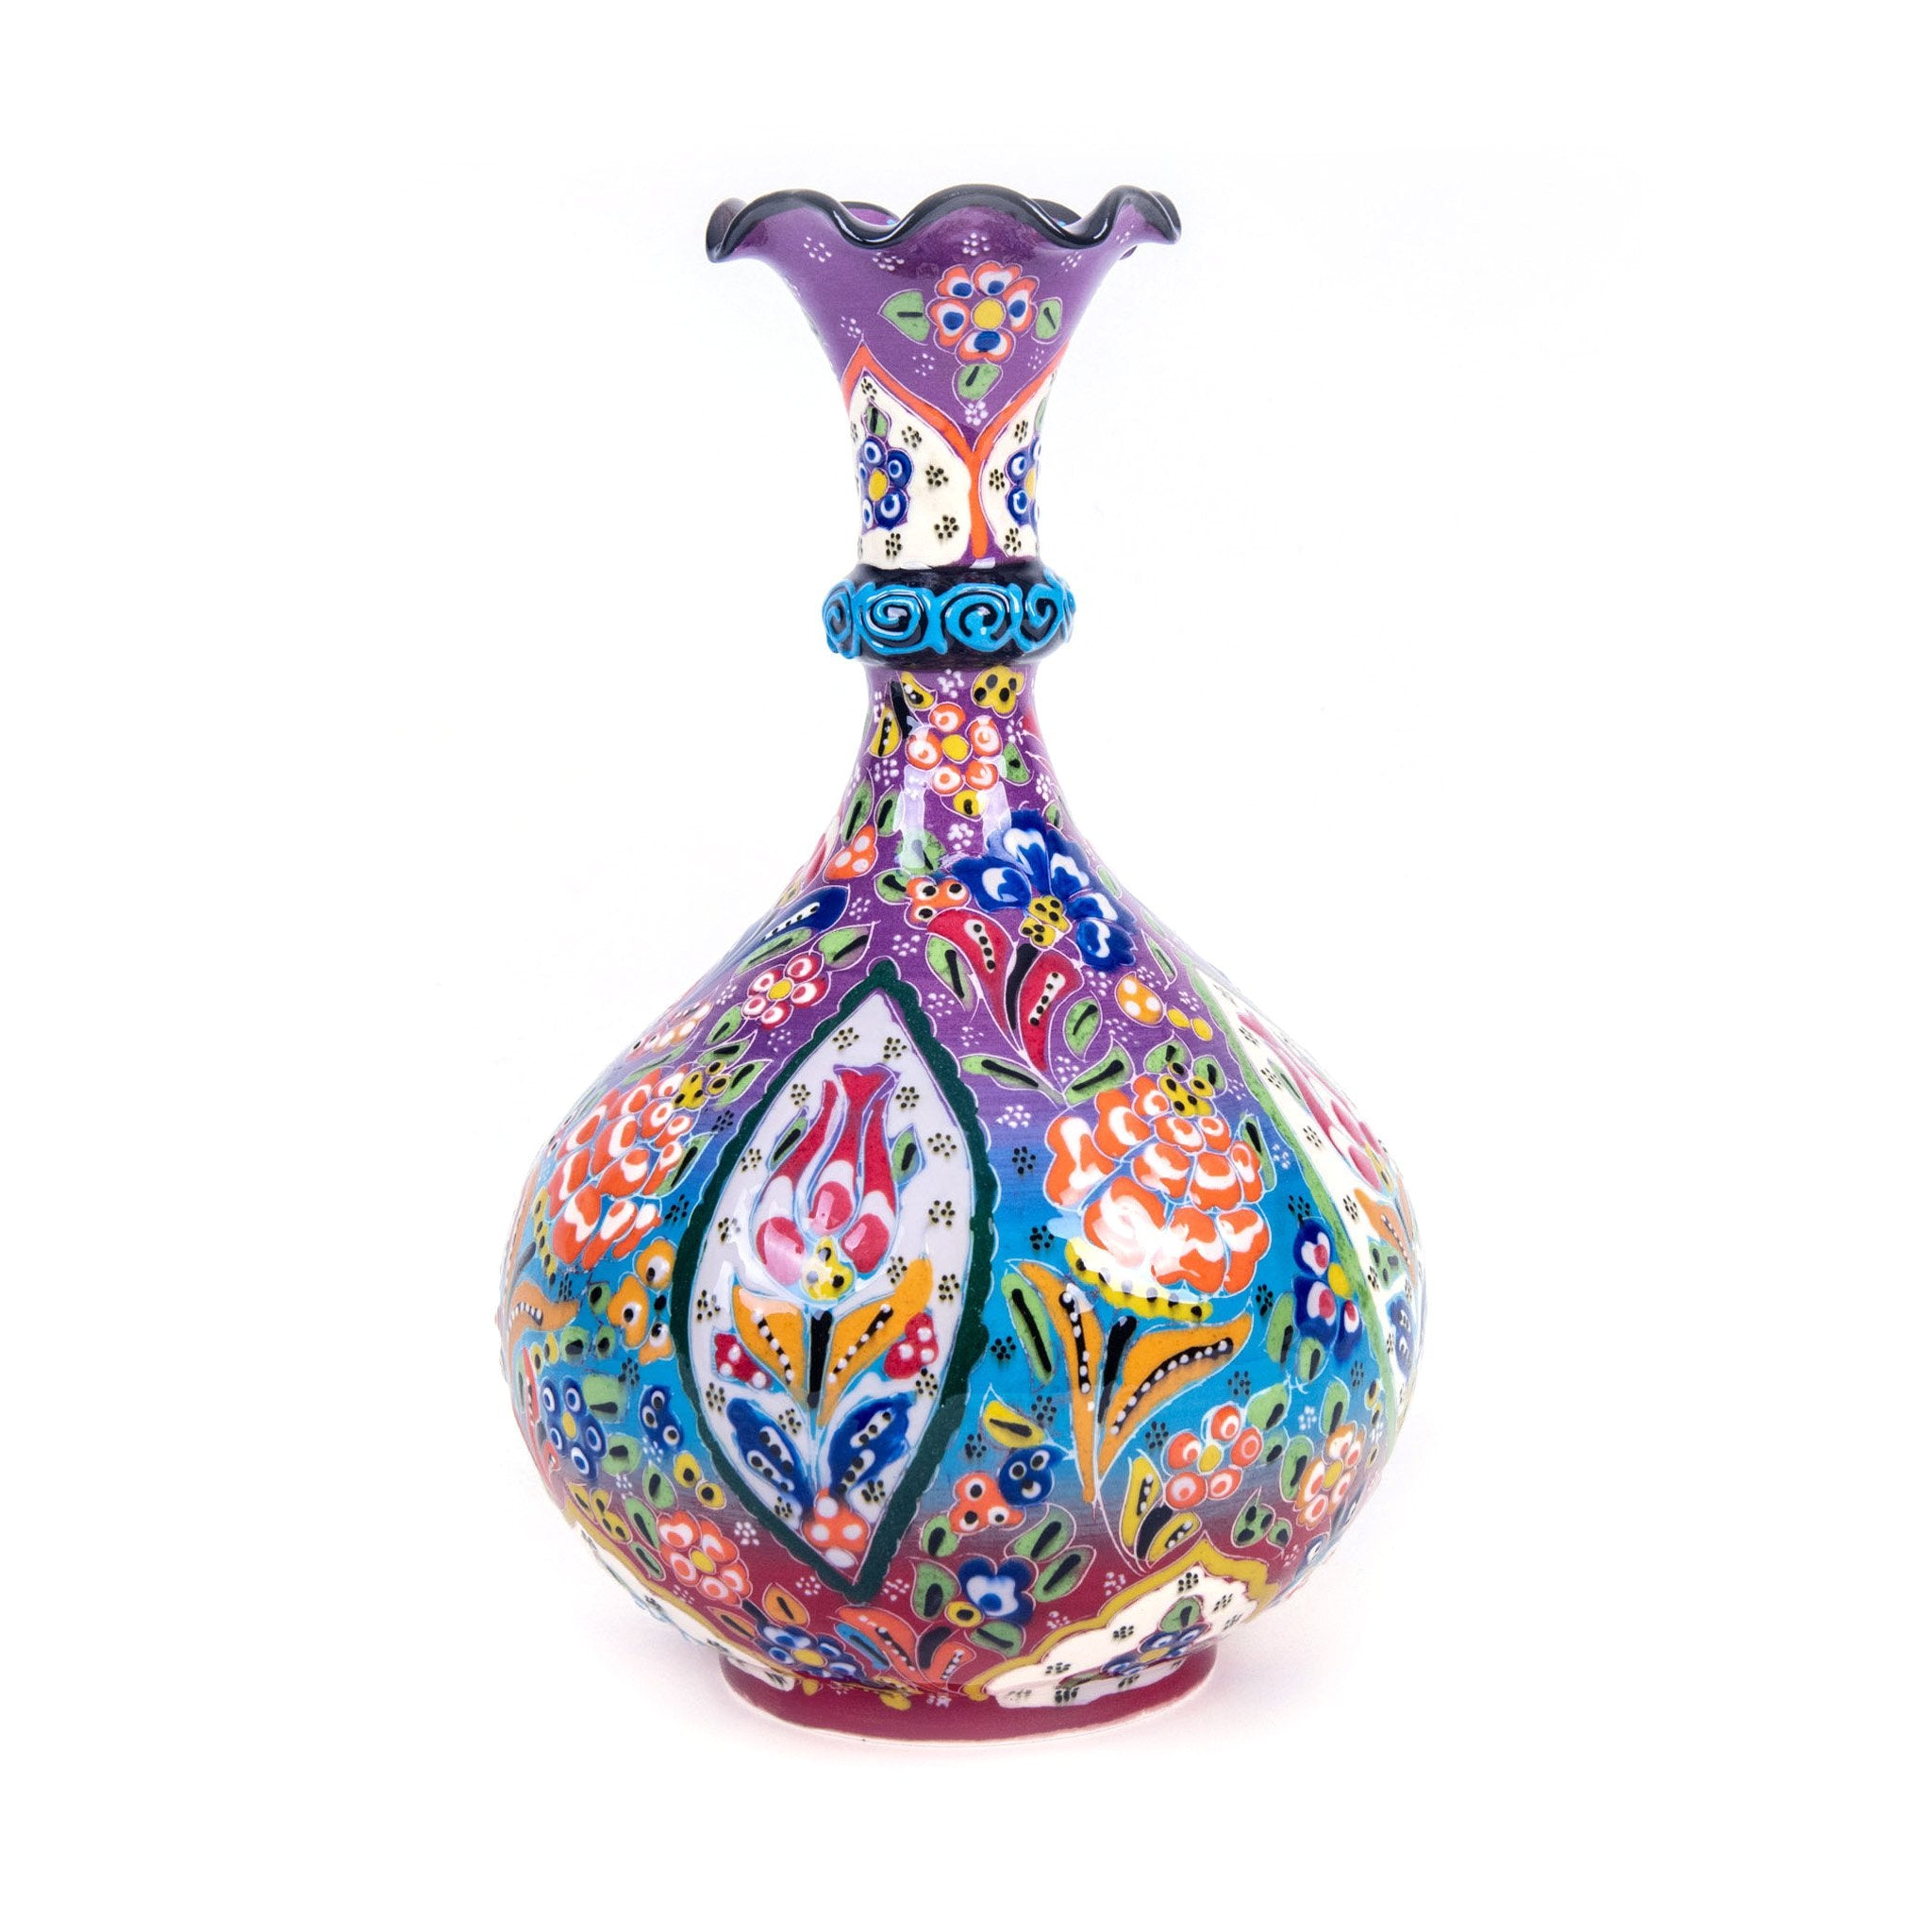 Turkish Ceramic Kutahya Design Handmade Teardrop Vase - 25 cm (10'')-1